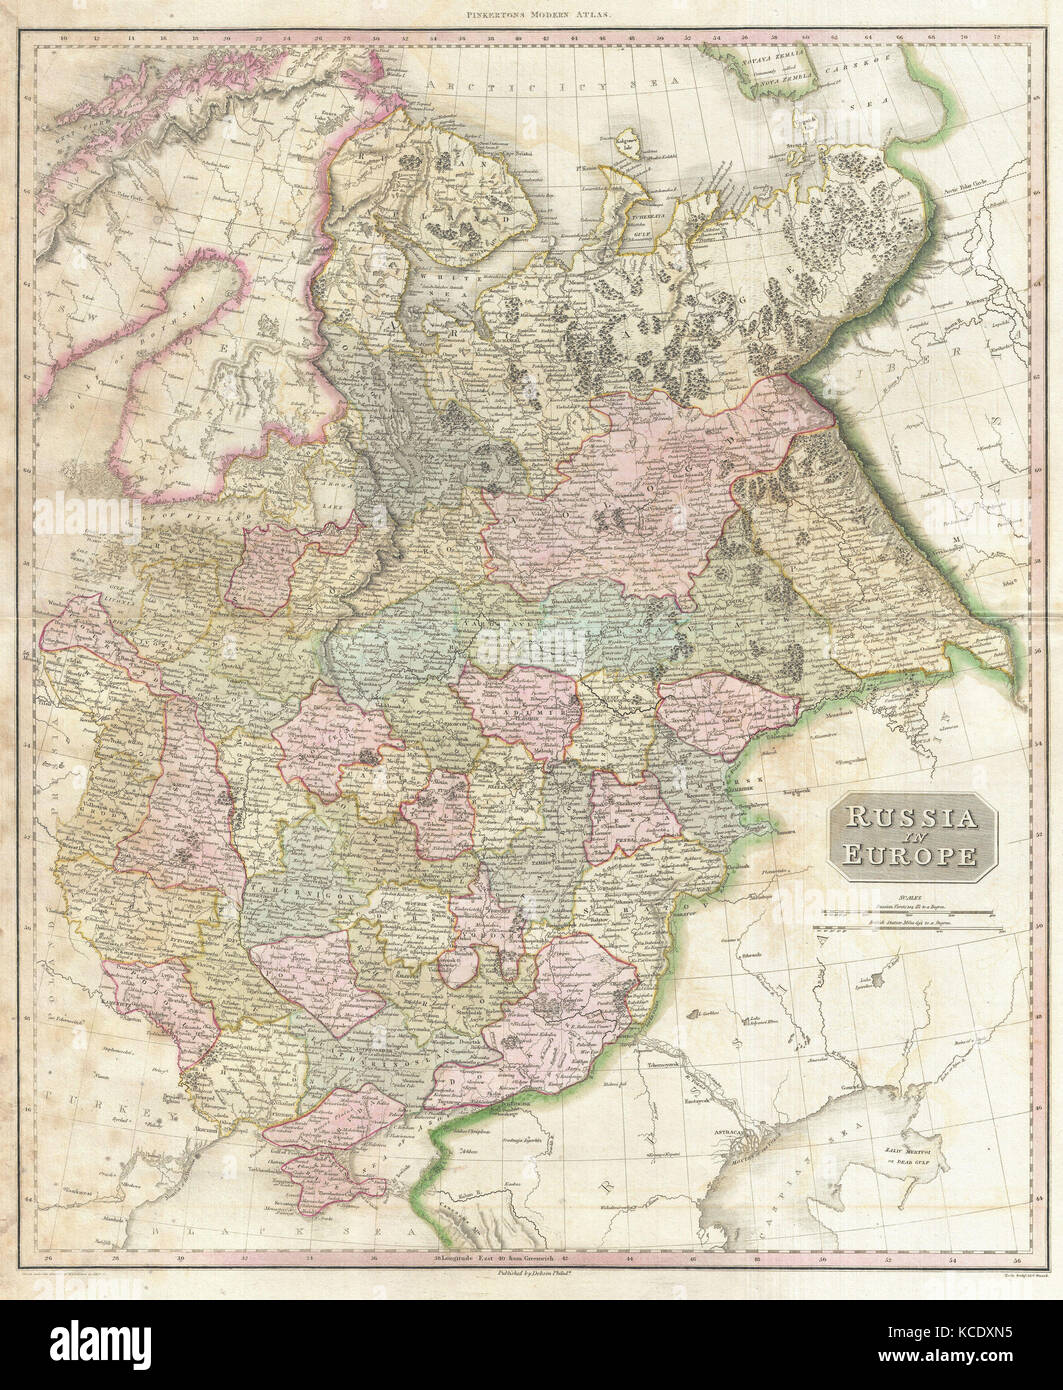 1818  Pinkerton Map of Russia in Europe  John Pinkerton  1758     1826     1818  Pinkerton Map of Russia in Europe  John Pinkerton  1758     1826   Scottish antiquarian  cartographer  UK